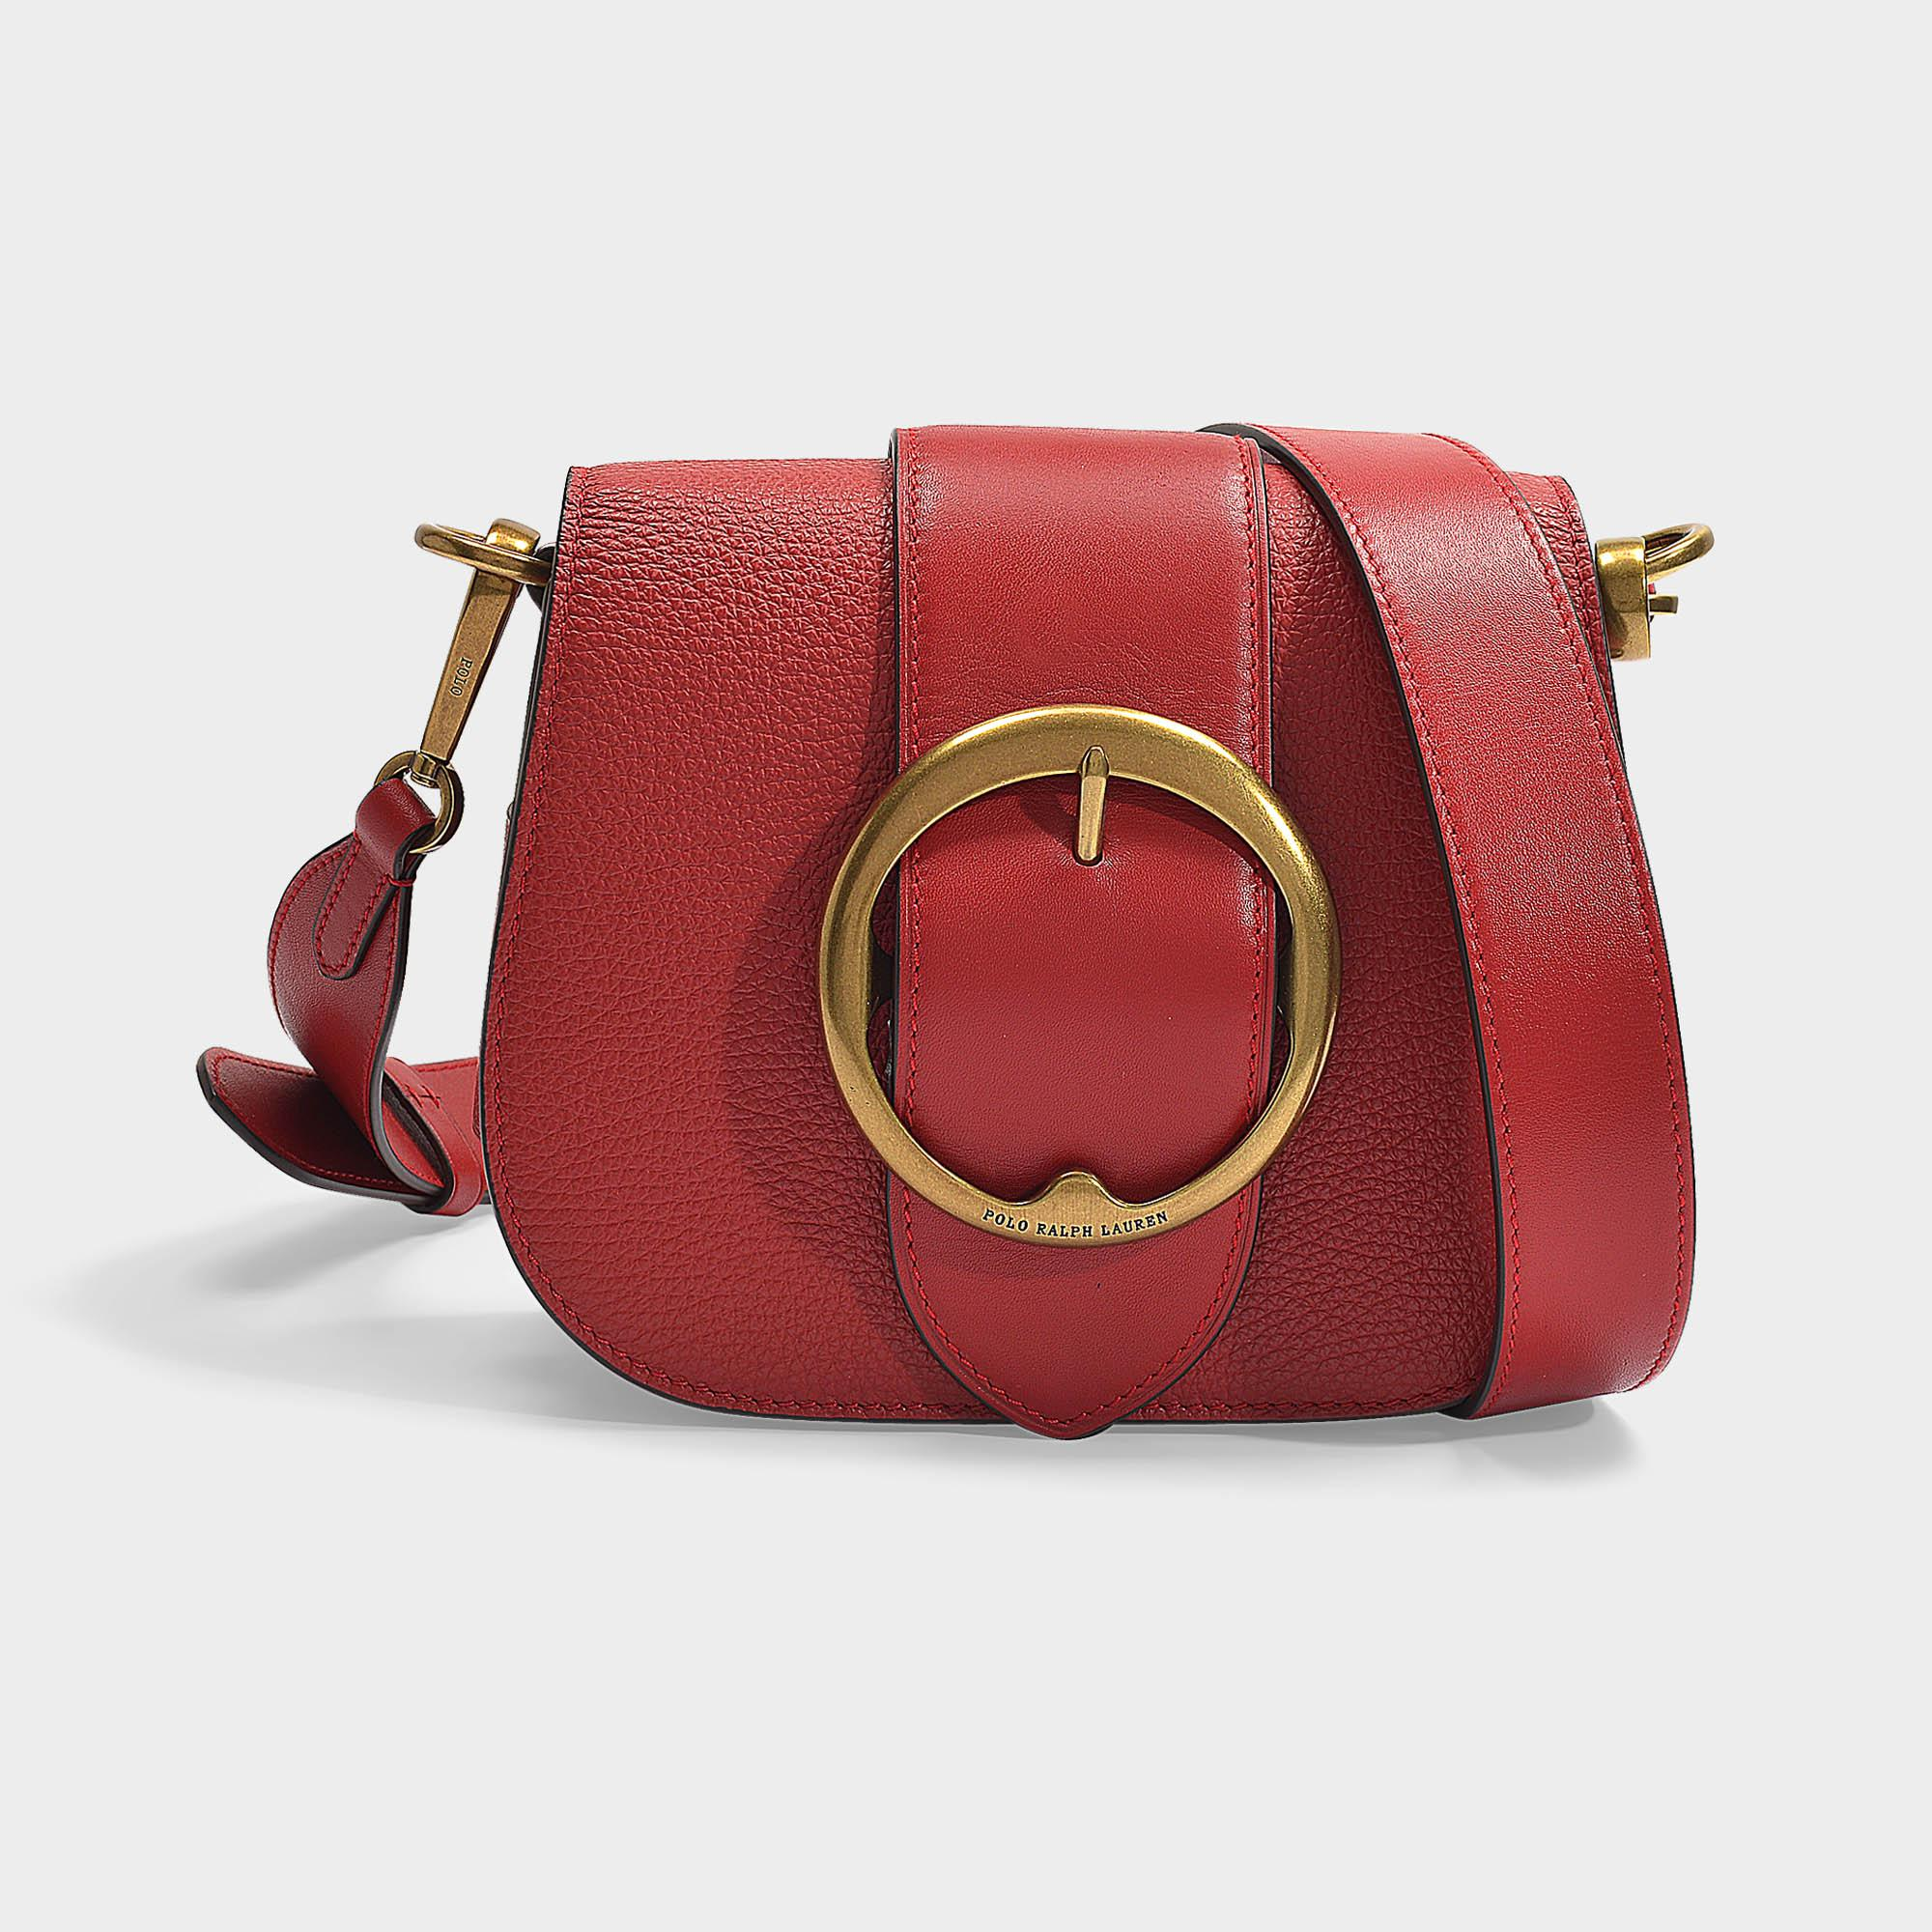 a5751ea316c6 Polo Ralph Lauren. Women s Red Lennox Medium Crossbody Bag In Scarlet  Pebble Leather